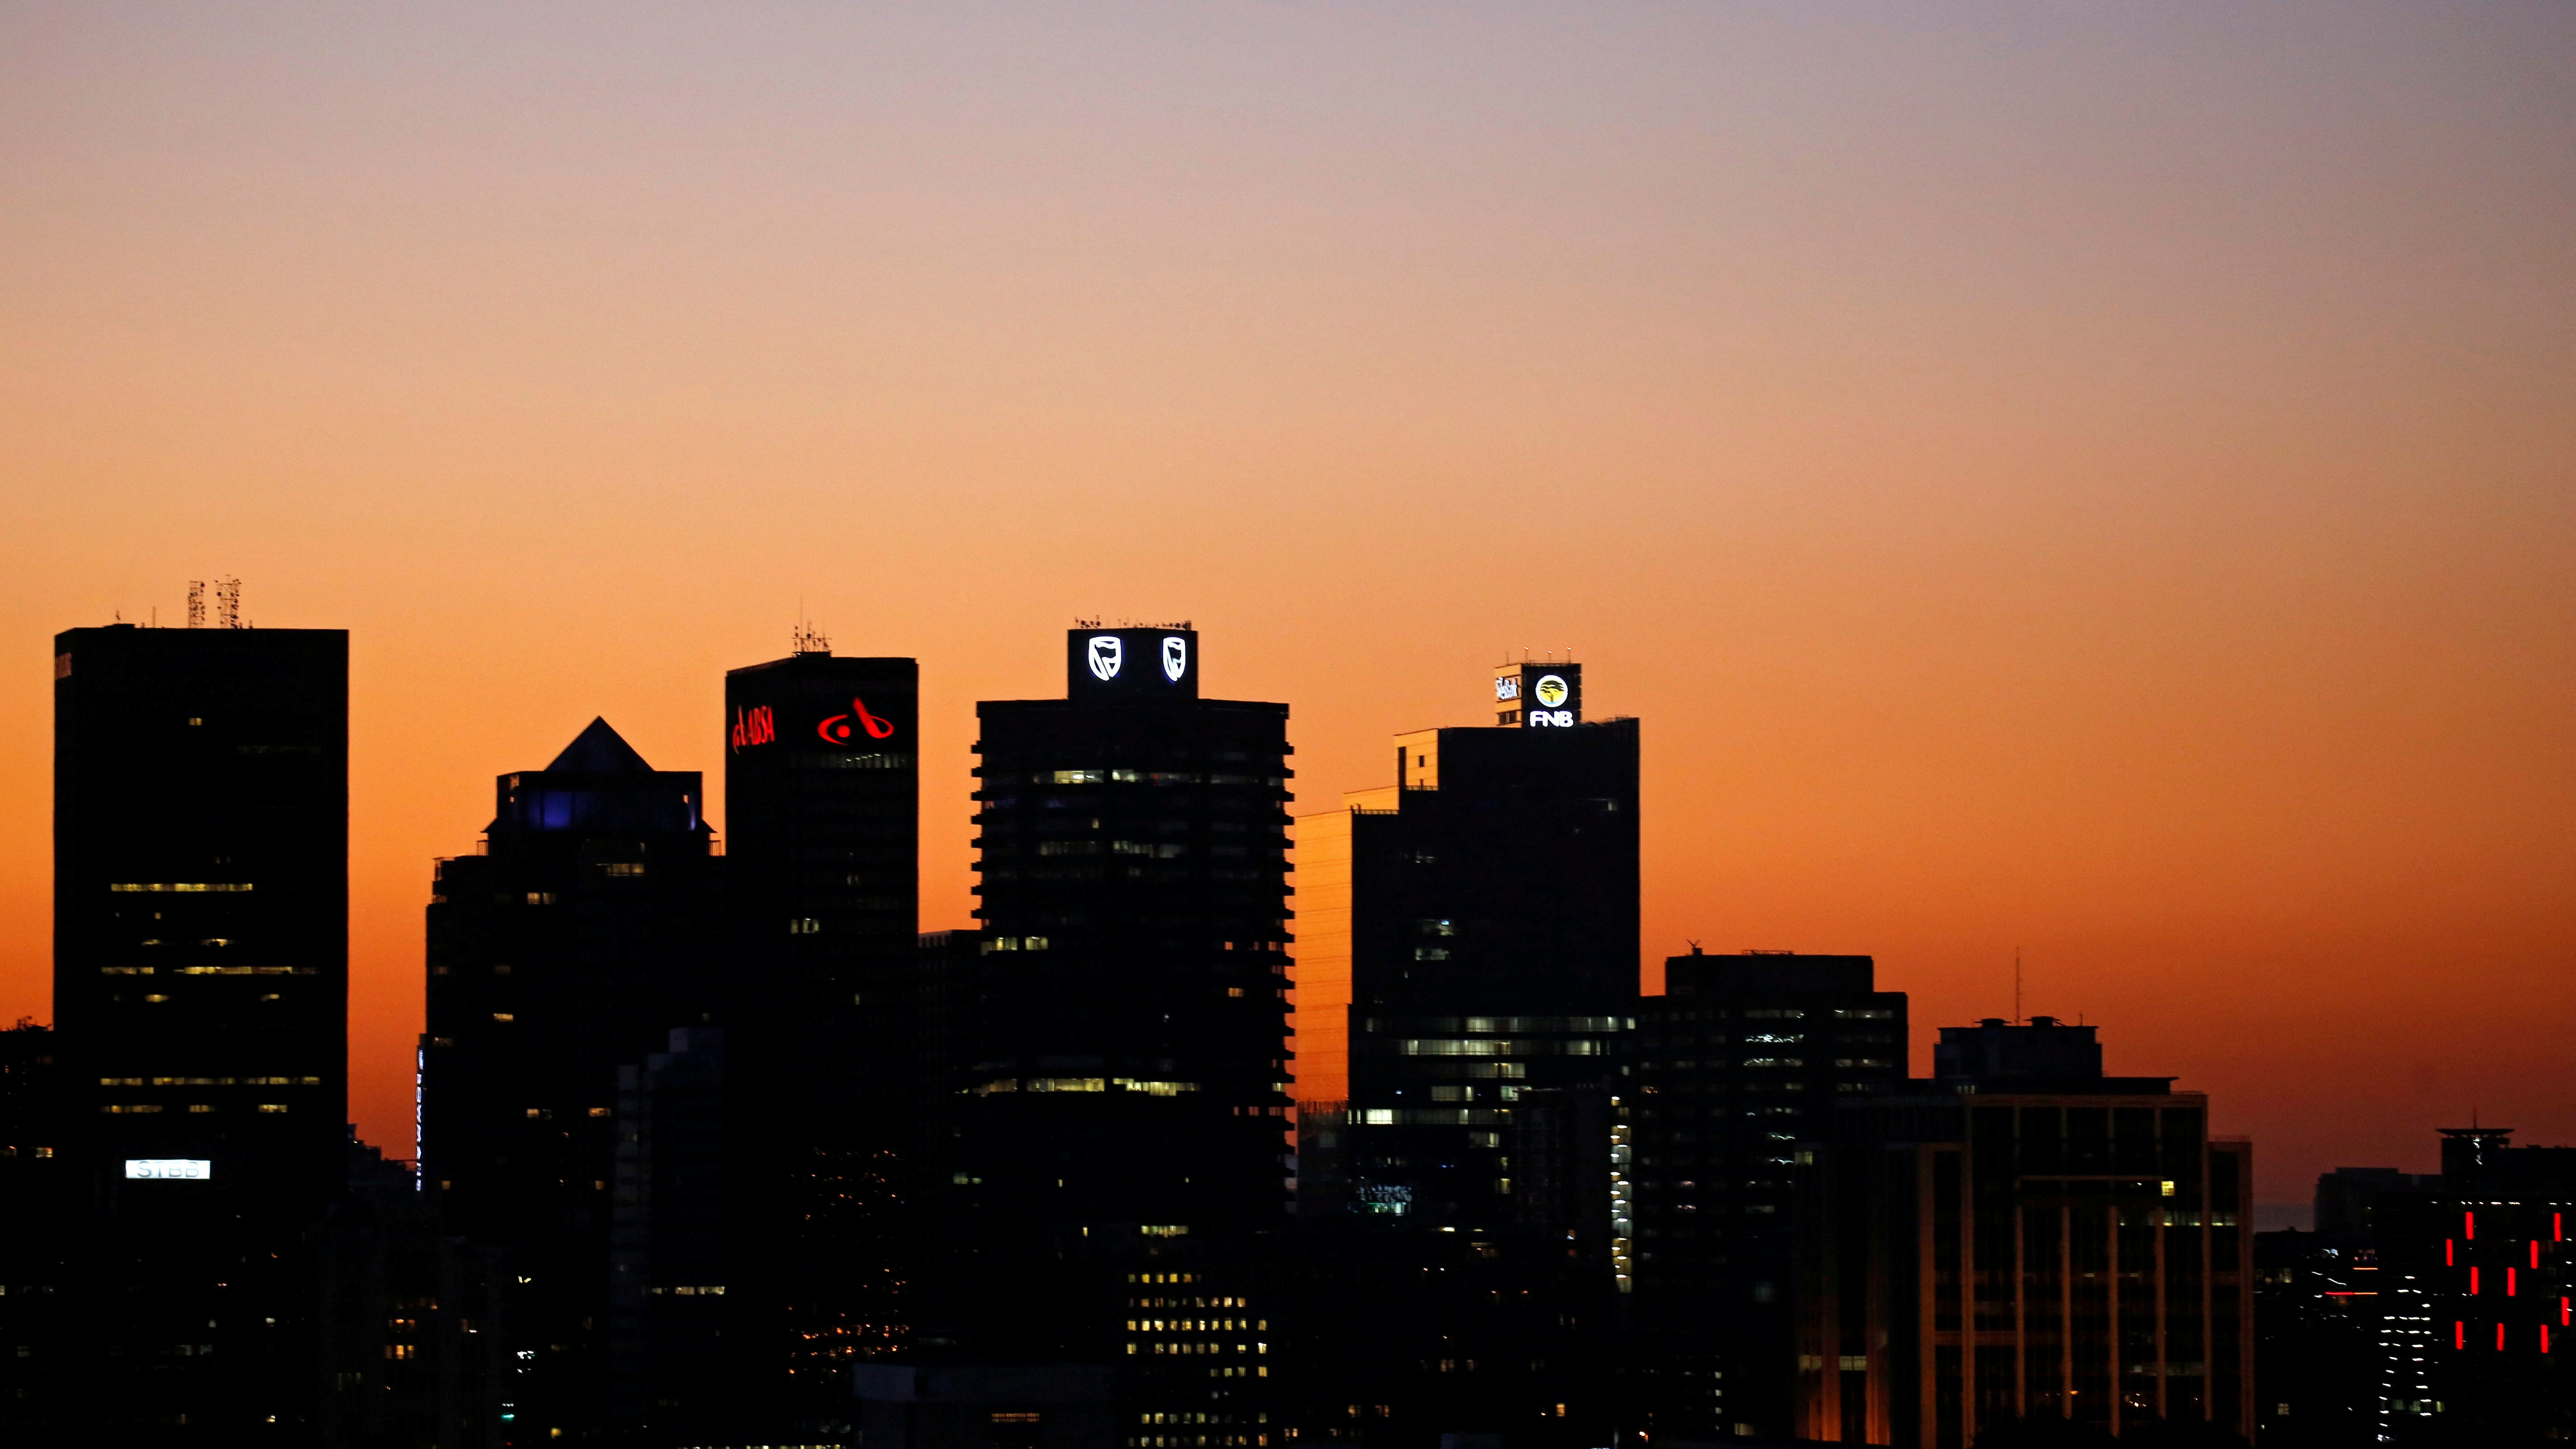 The buildings with the logos of three of South Africa's biggest banks, ABSA, Standard Bank and First National Bank are seen against the city skyline in Cape Town